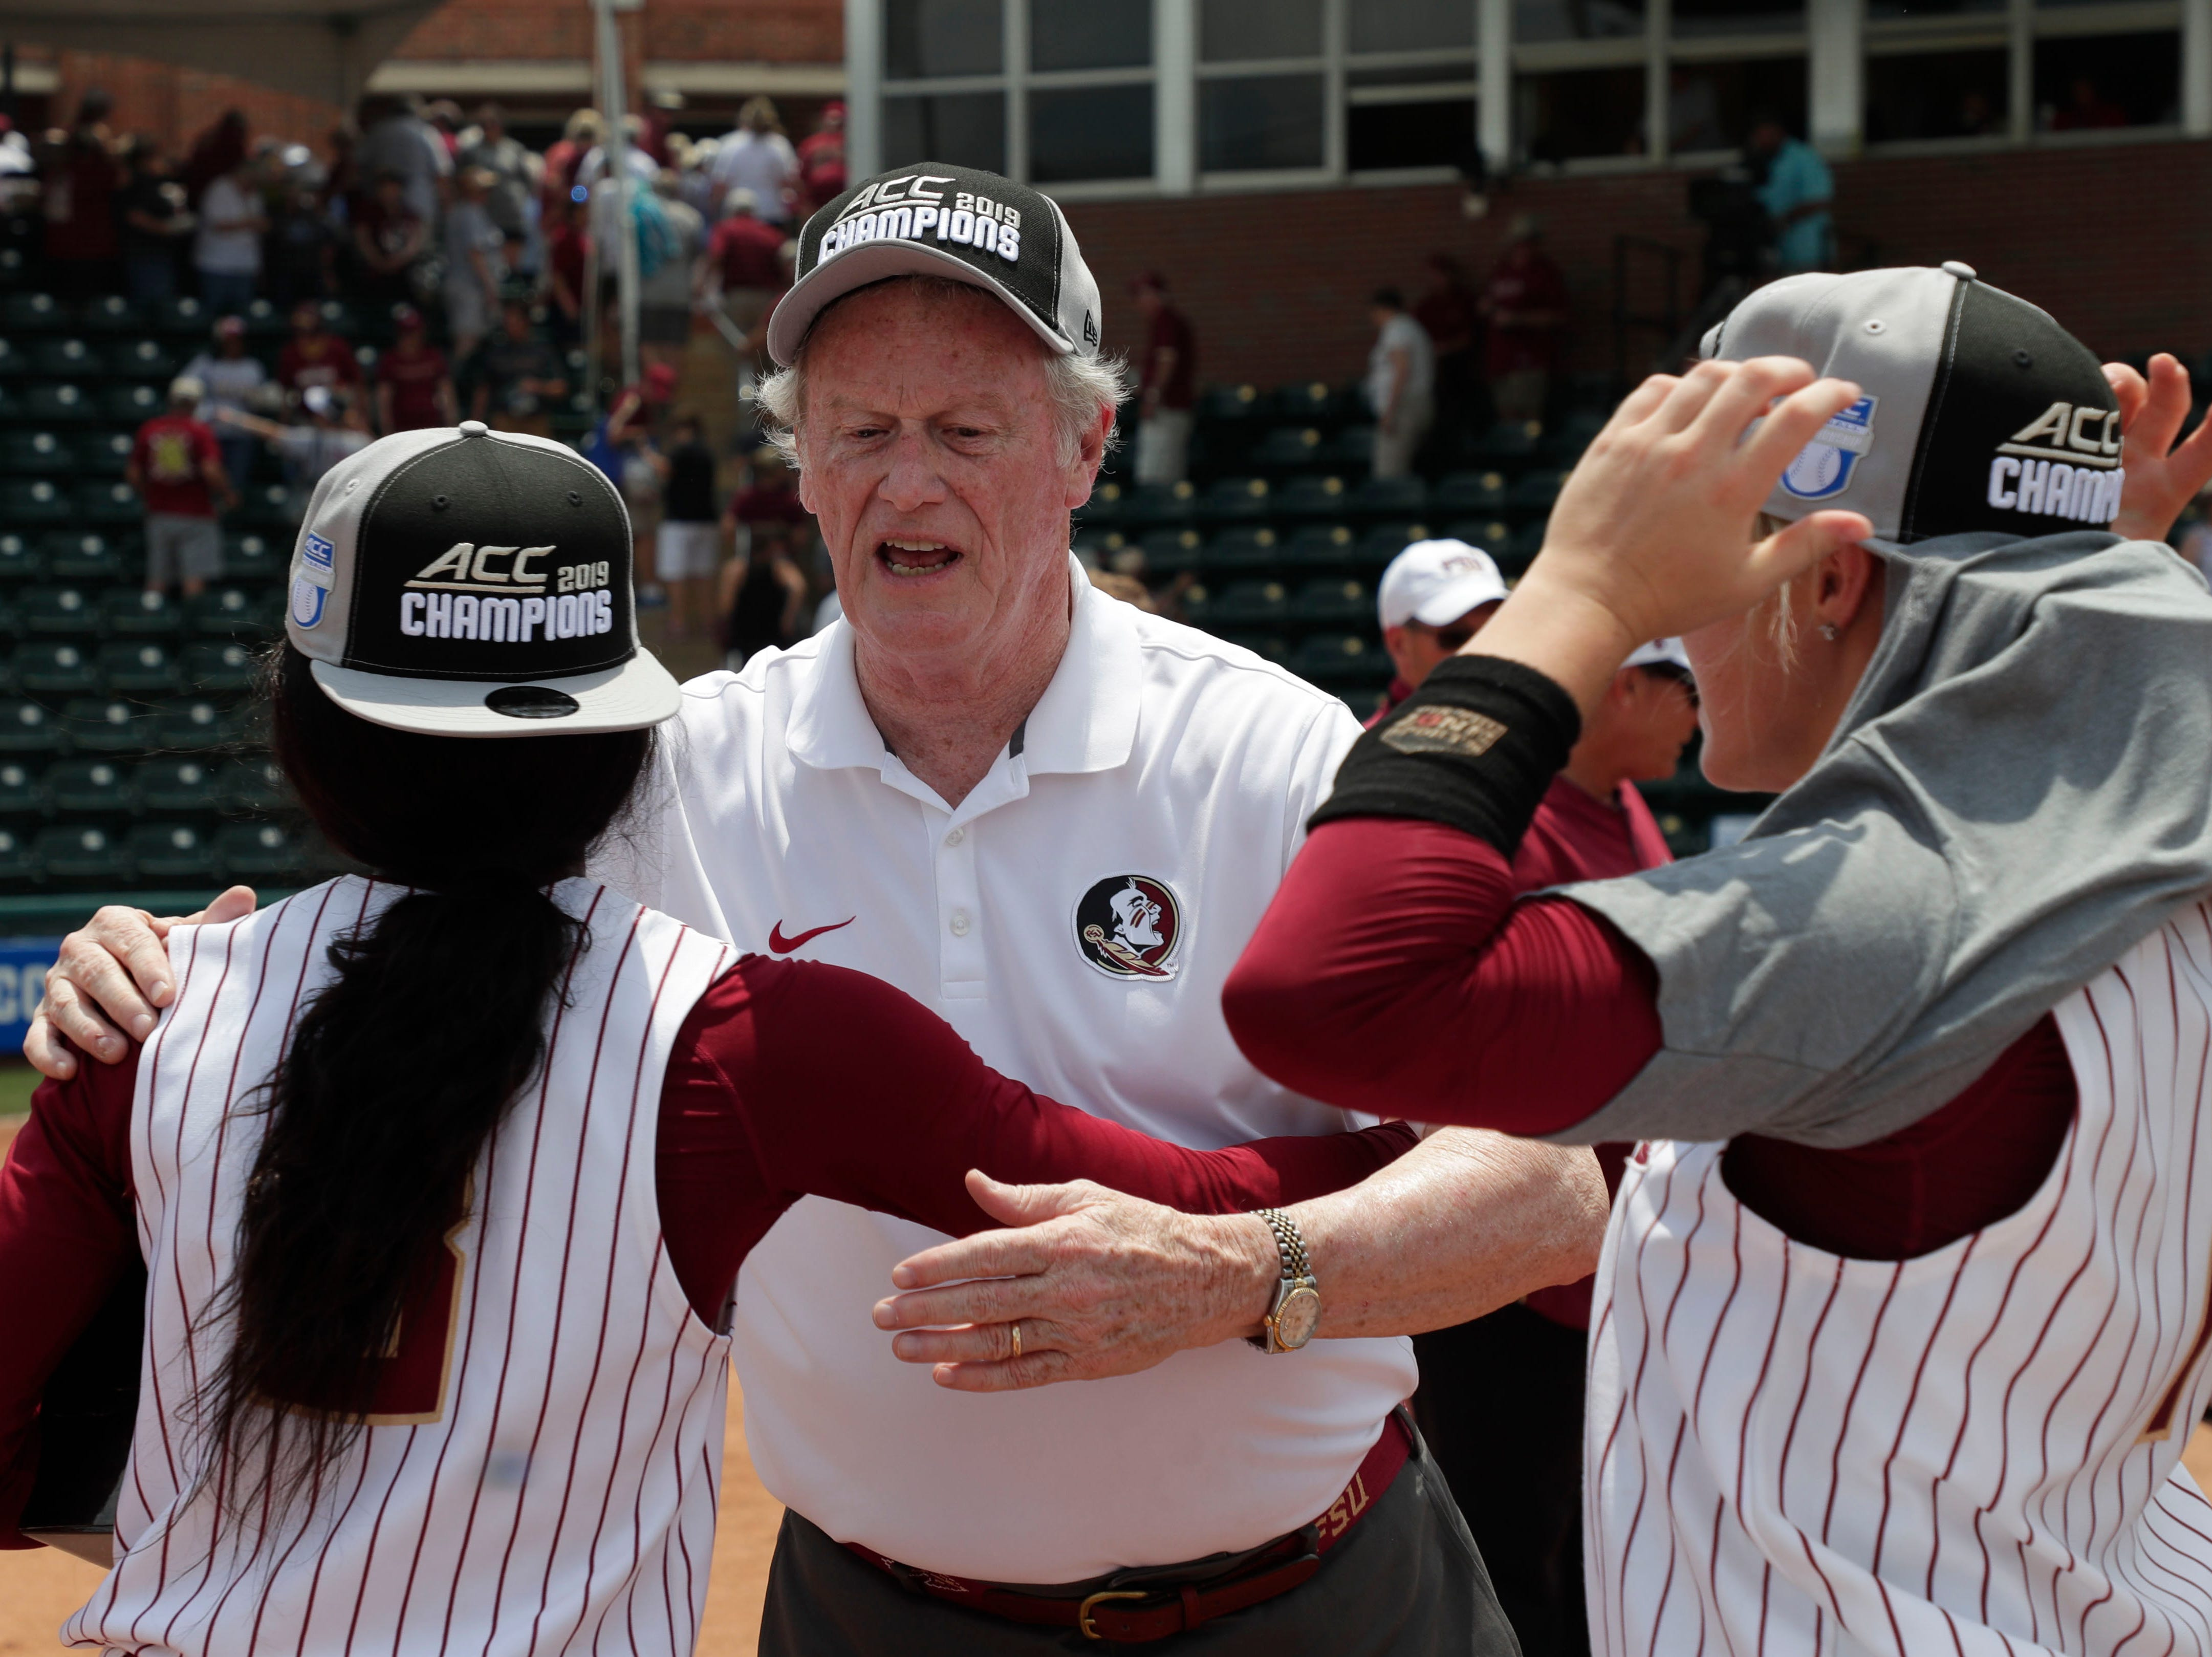 Florida State President John Thrasher hugs the Florida State Seminoles softball players. The Florida State Seminoles celebrate their victory over the UNC Tar Heels for the ACC Softball Championship title Saturday, May 11, 2019.